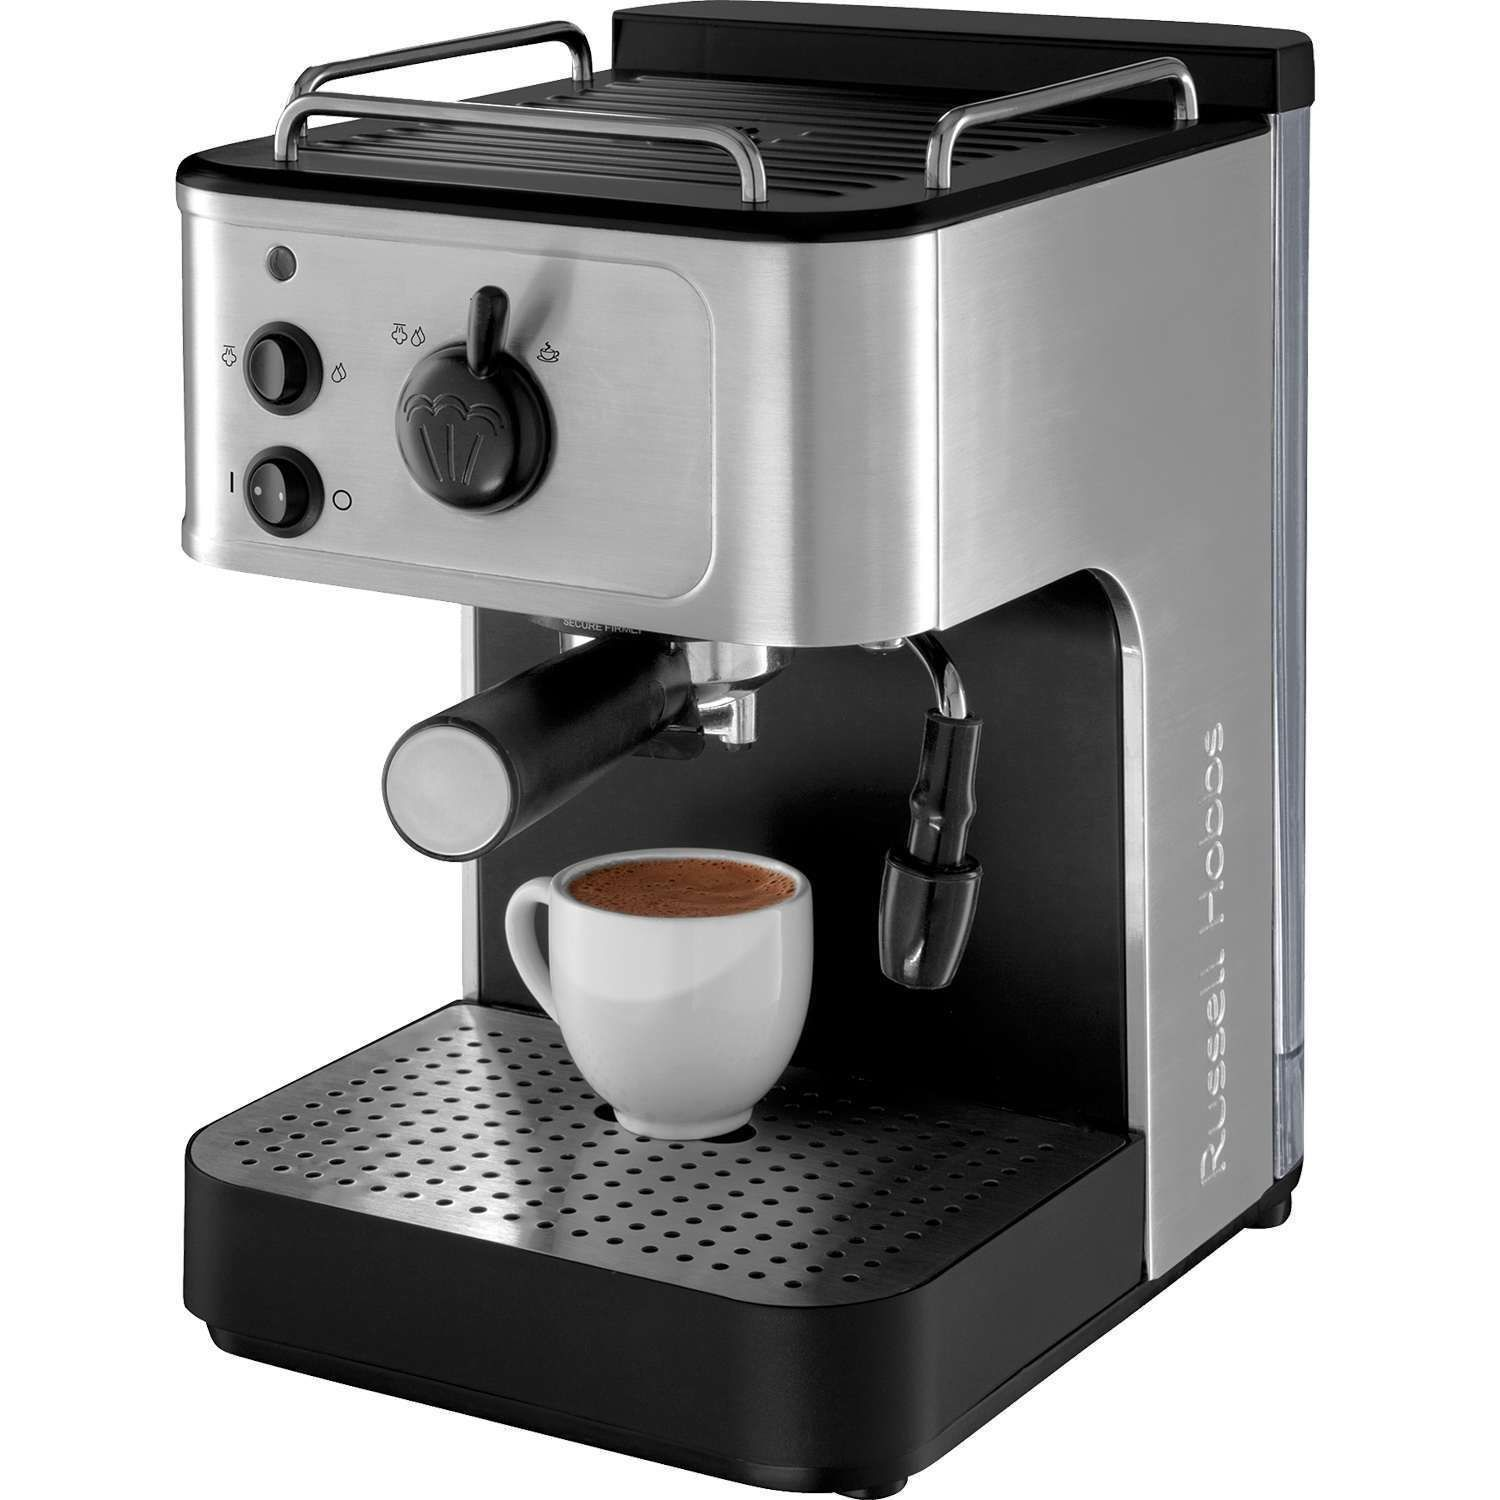 RUSSELL HOBBS 18623 COFFEE MAKER WITH MILK FROTHER eBay